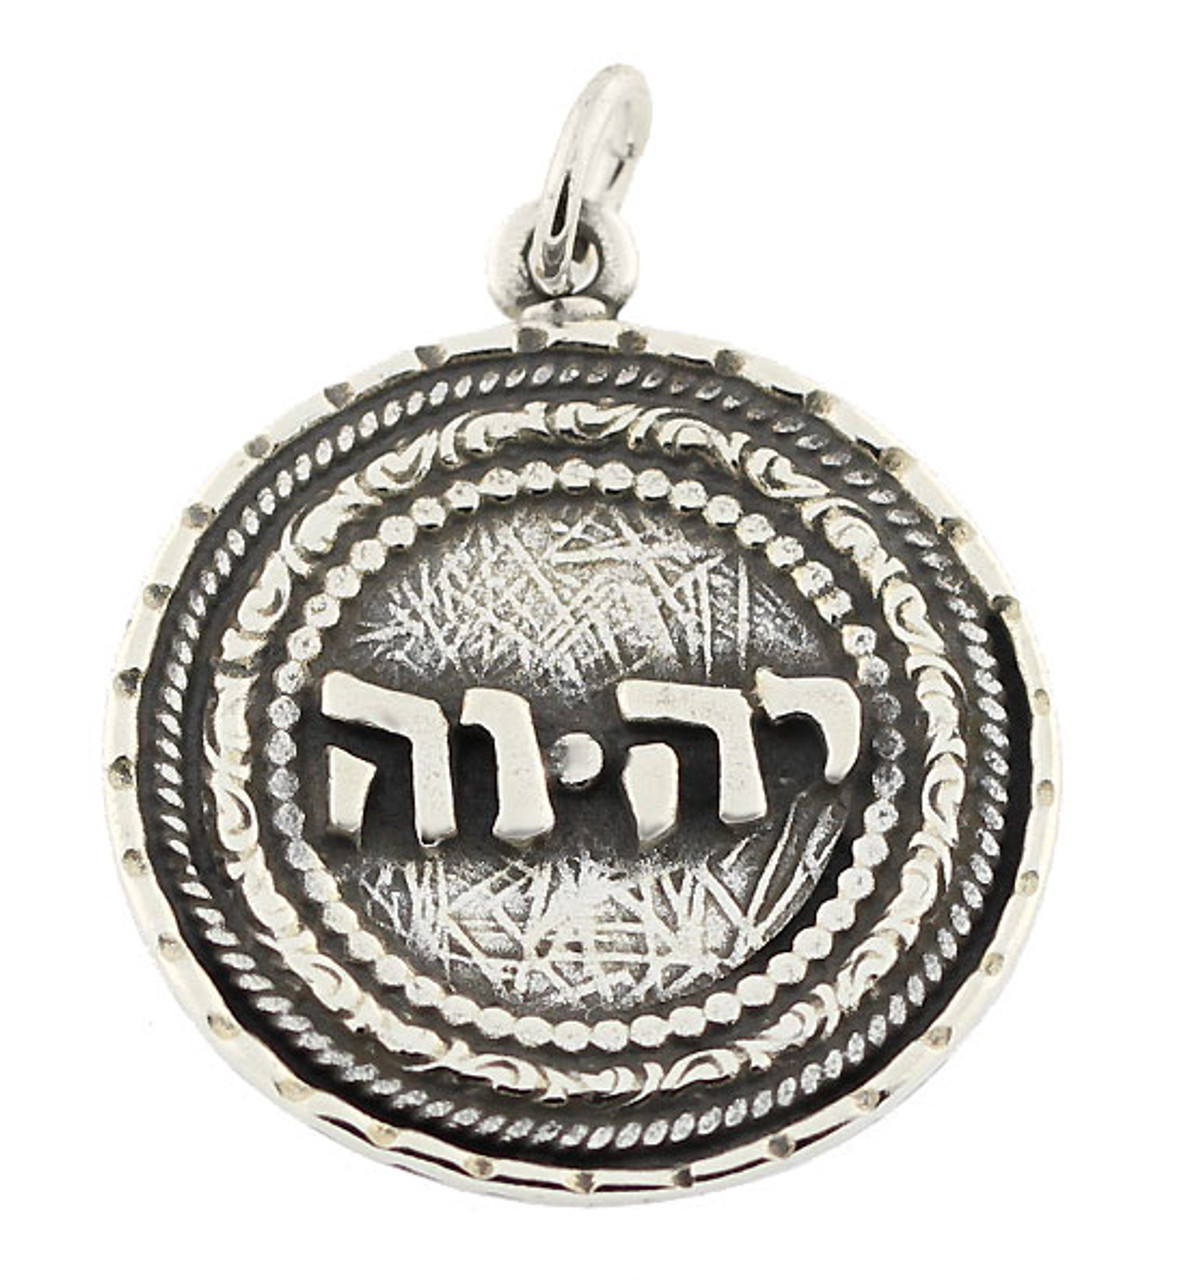 YAHWEH PENDANT - The Name of God in Hebrew